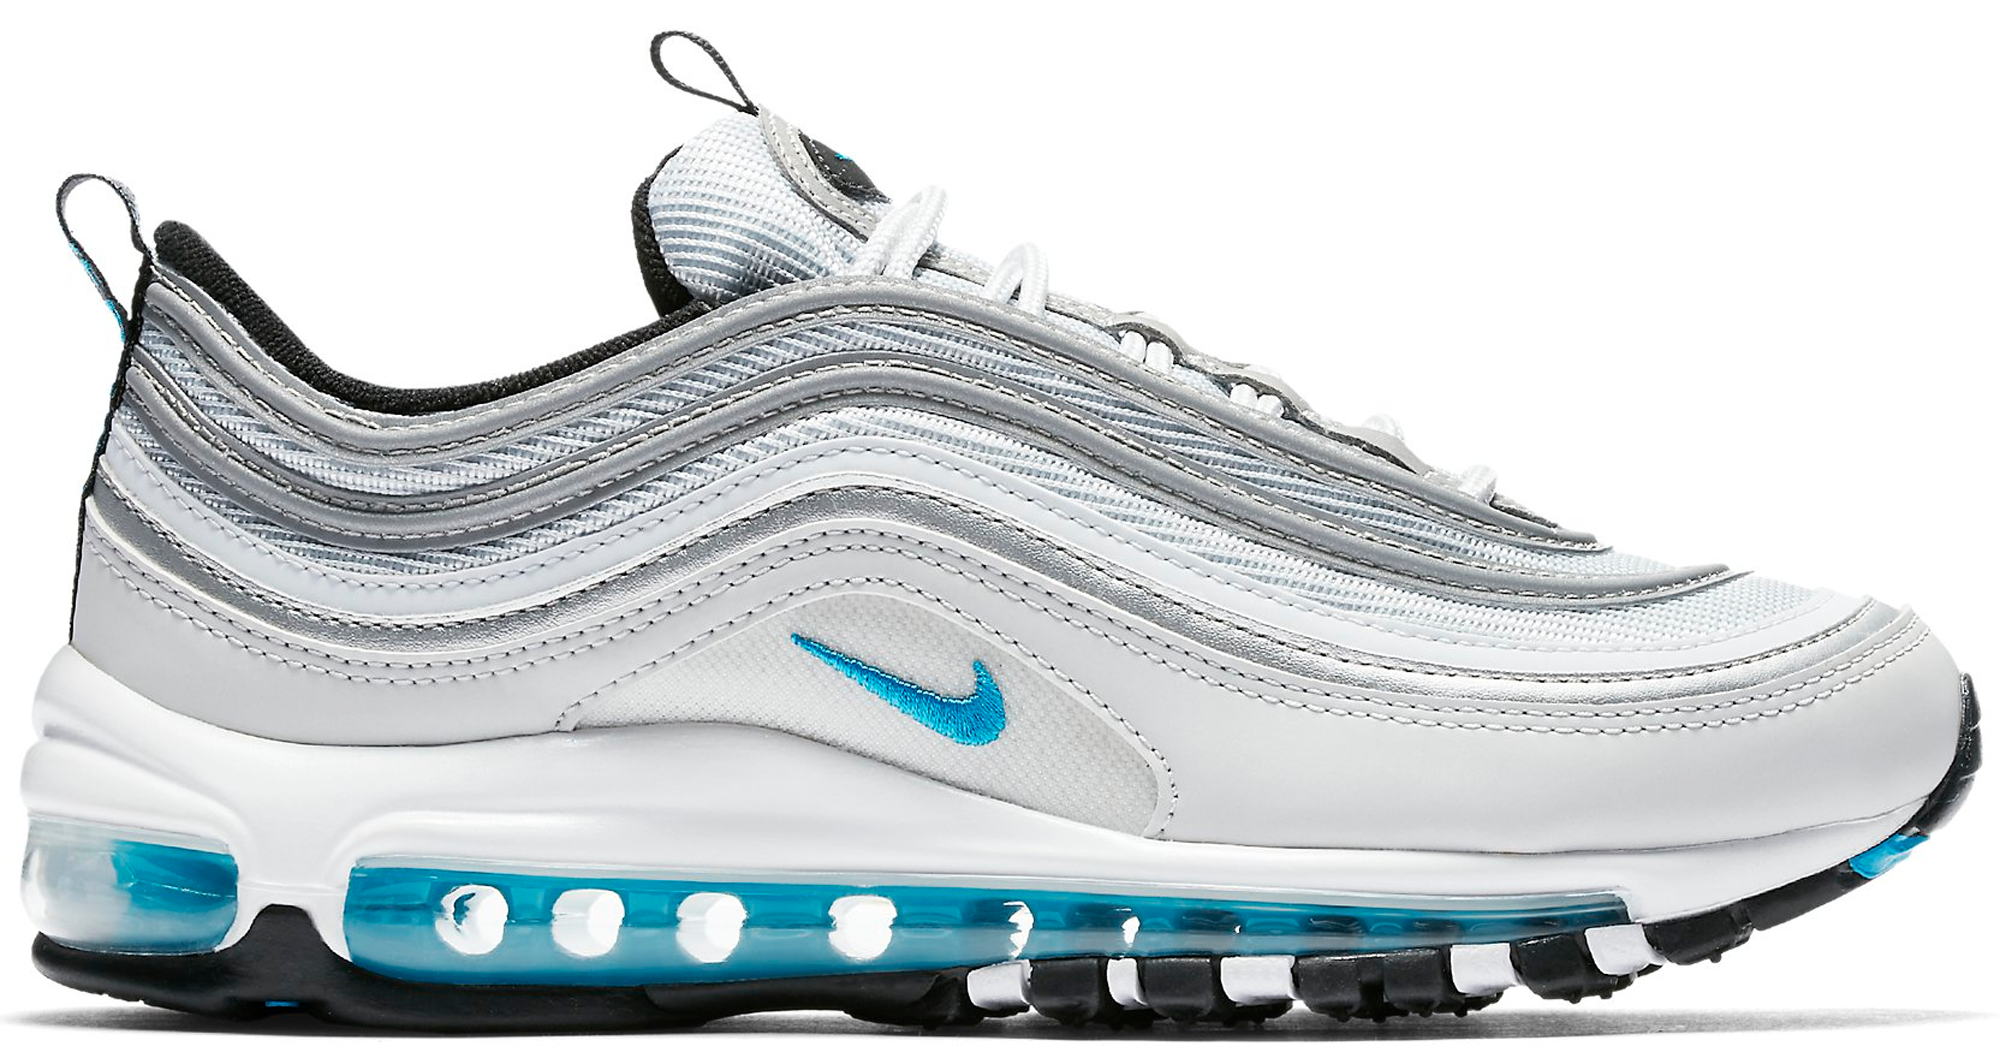 Women's Nike Air Max '97 Marina Blue 2017 Retro 20th Anniversary